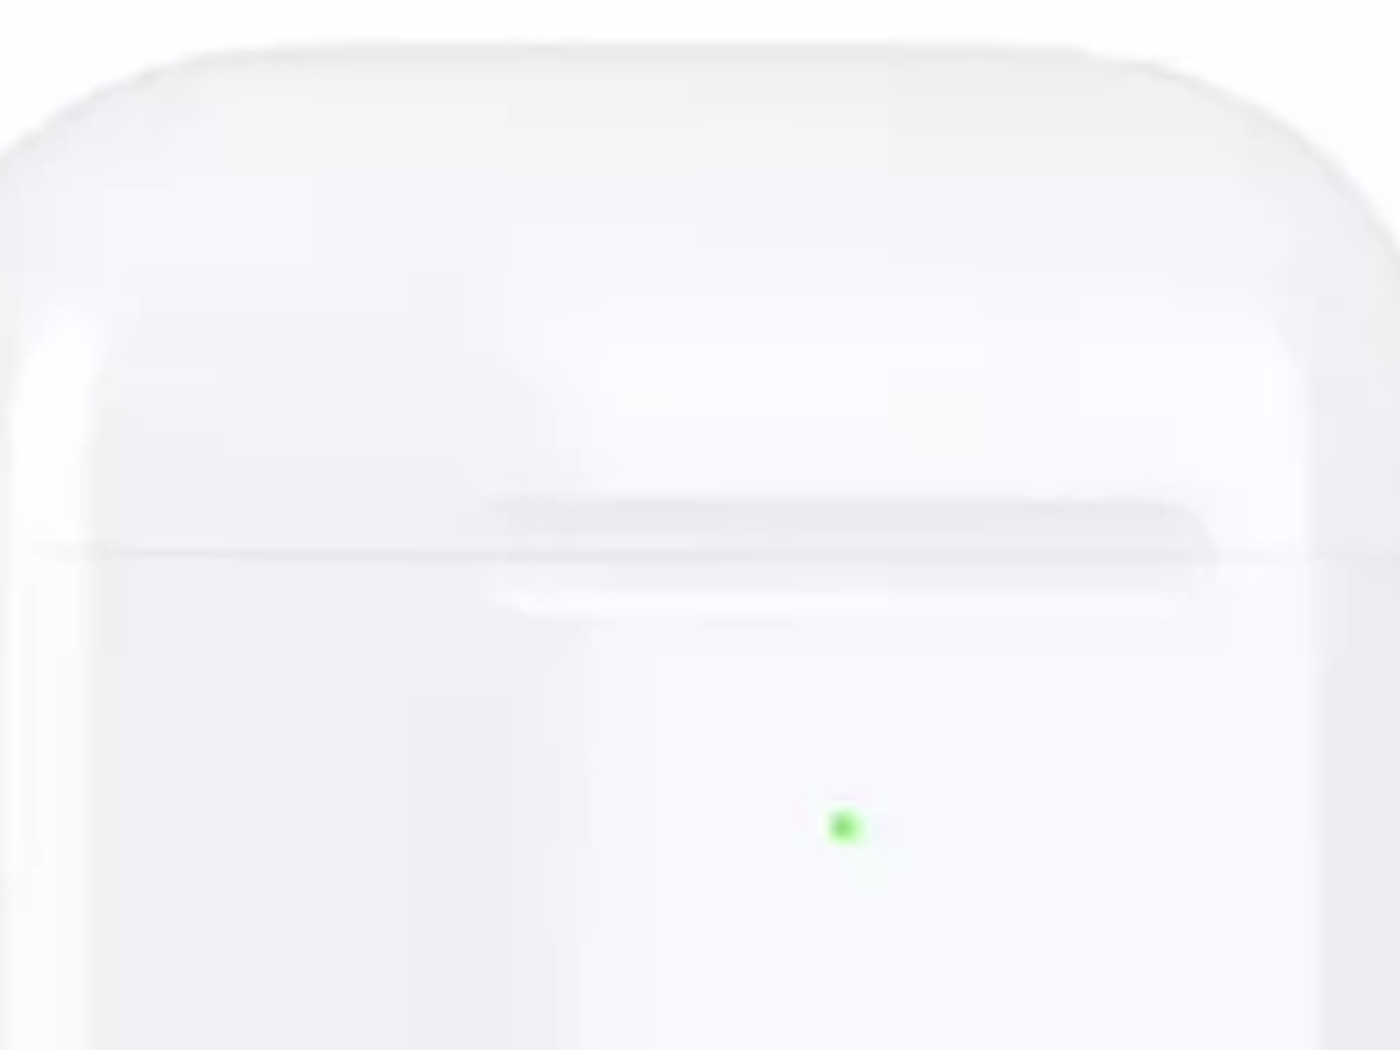 buy popular 5b2d1 f4703 Does this little green dot mean a new AirPods case is imminent ...